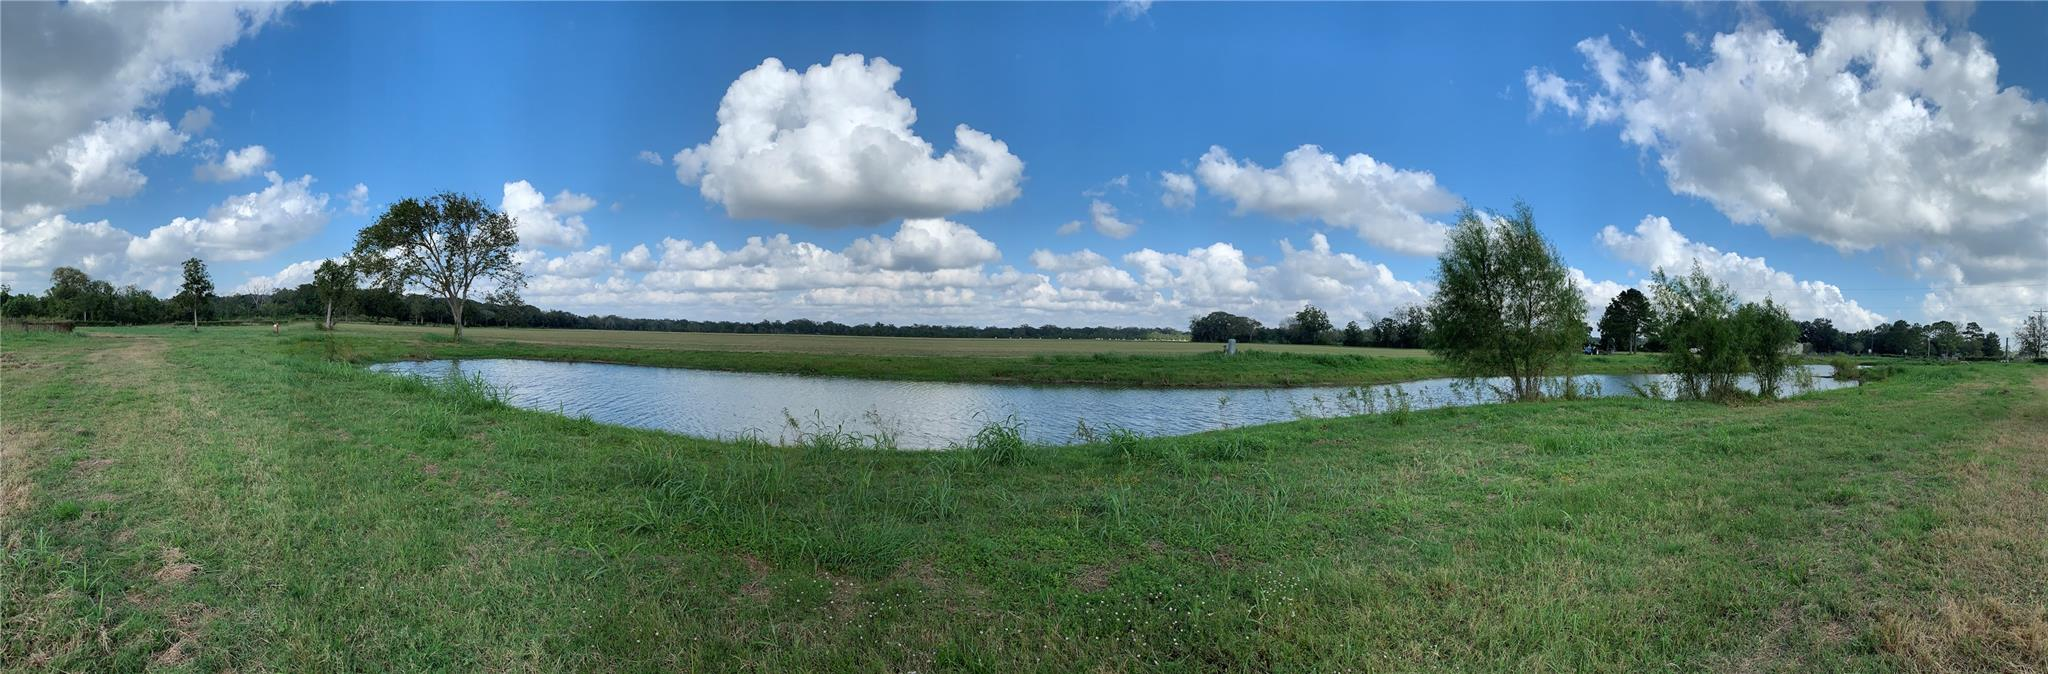 1152 FM 524 Property Photo - Sweeny, TX real estate listing